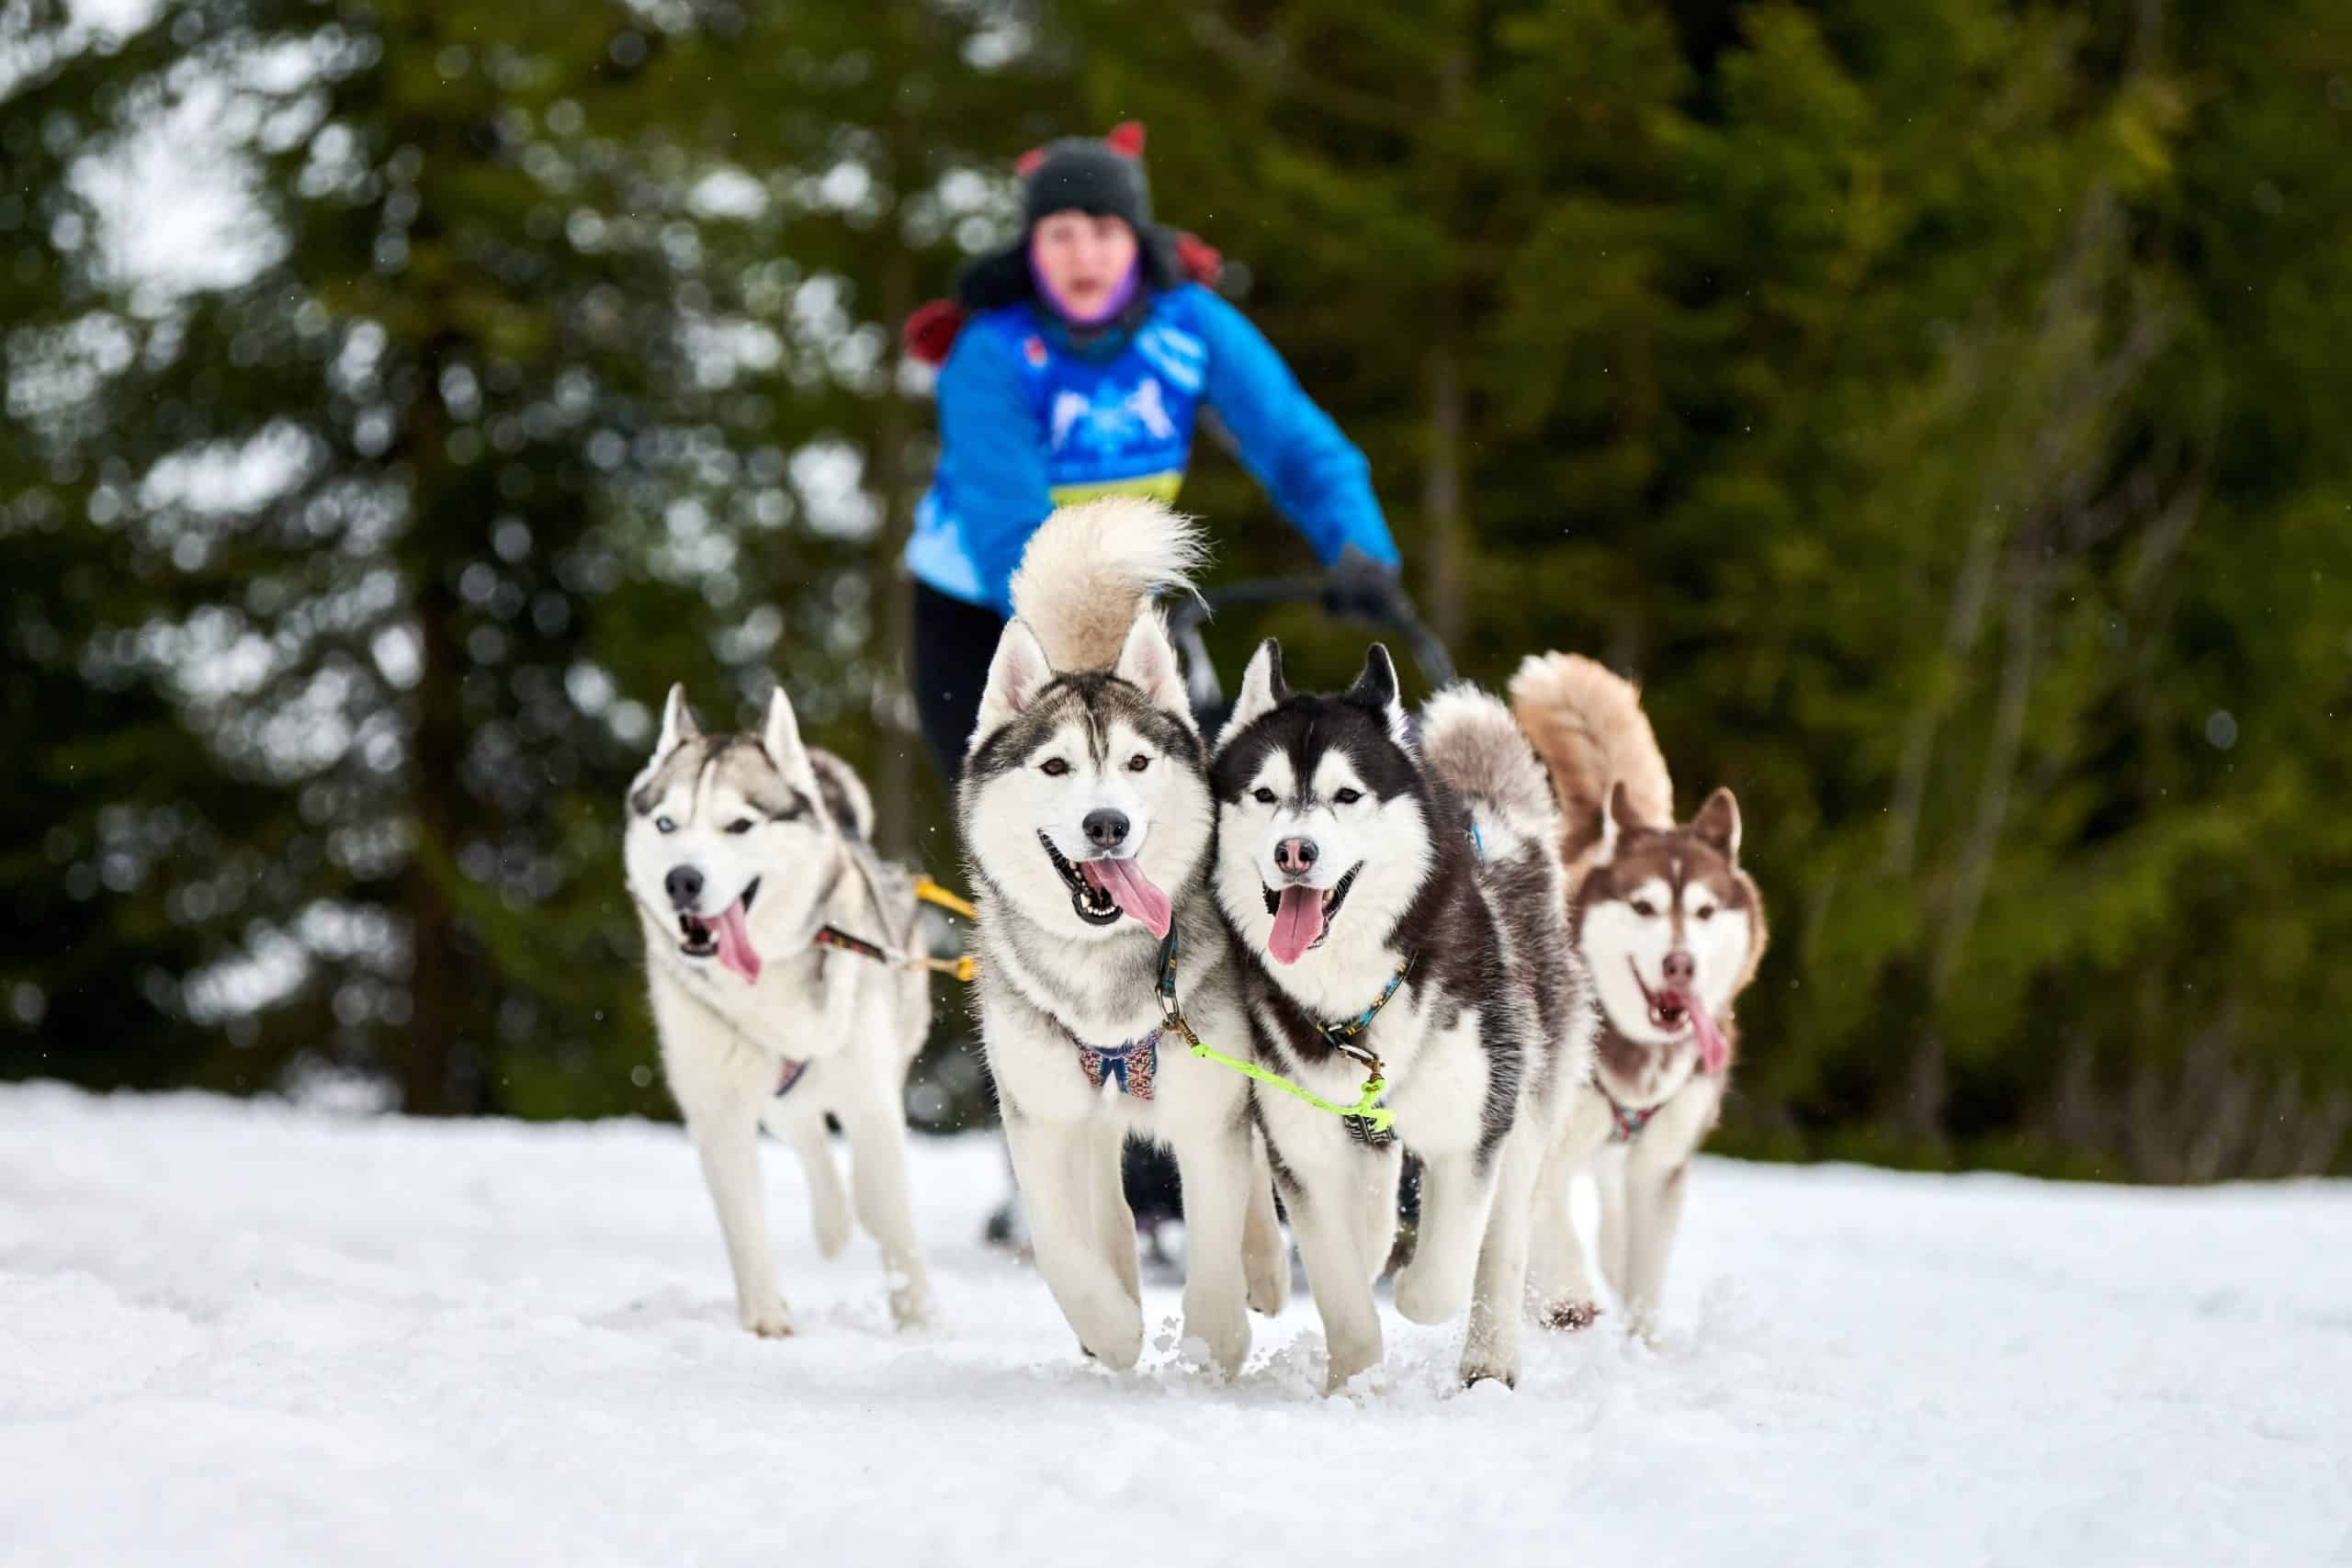 A team of Siberian huskies pulls a sled. These dogs are among the most athletic of the active dog breeds.